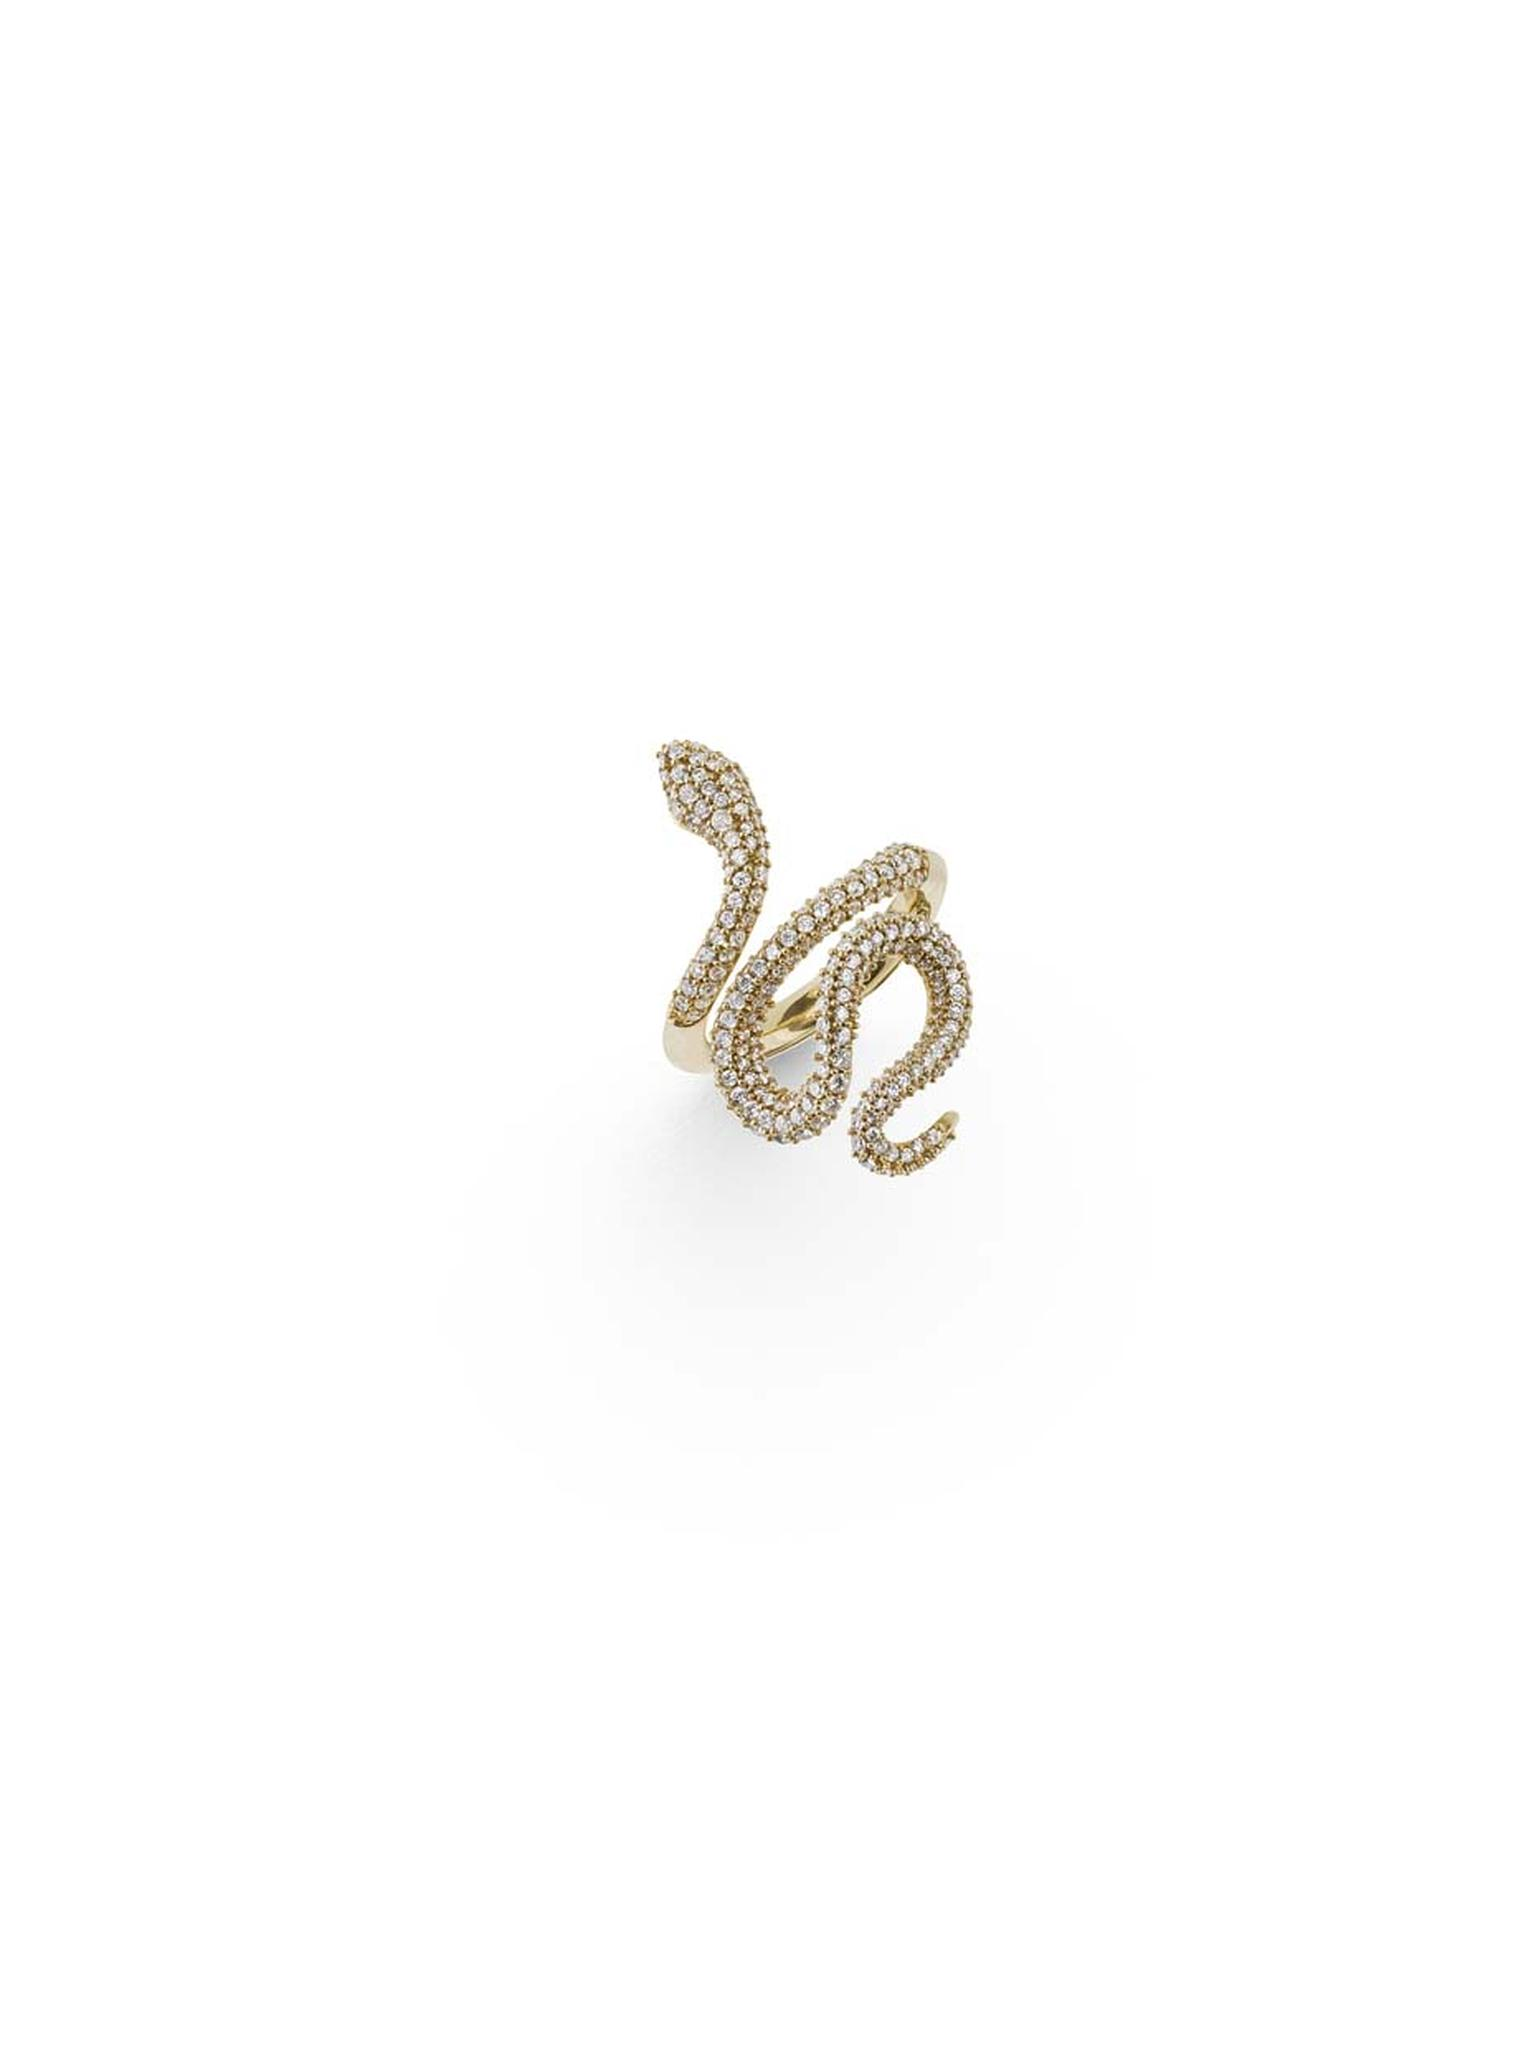 Ole Lynggaard snakes ring in 18ct yellow gold with pave diamonds.